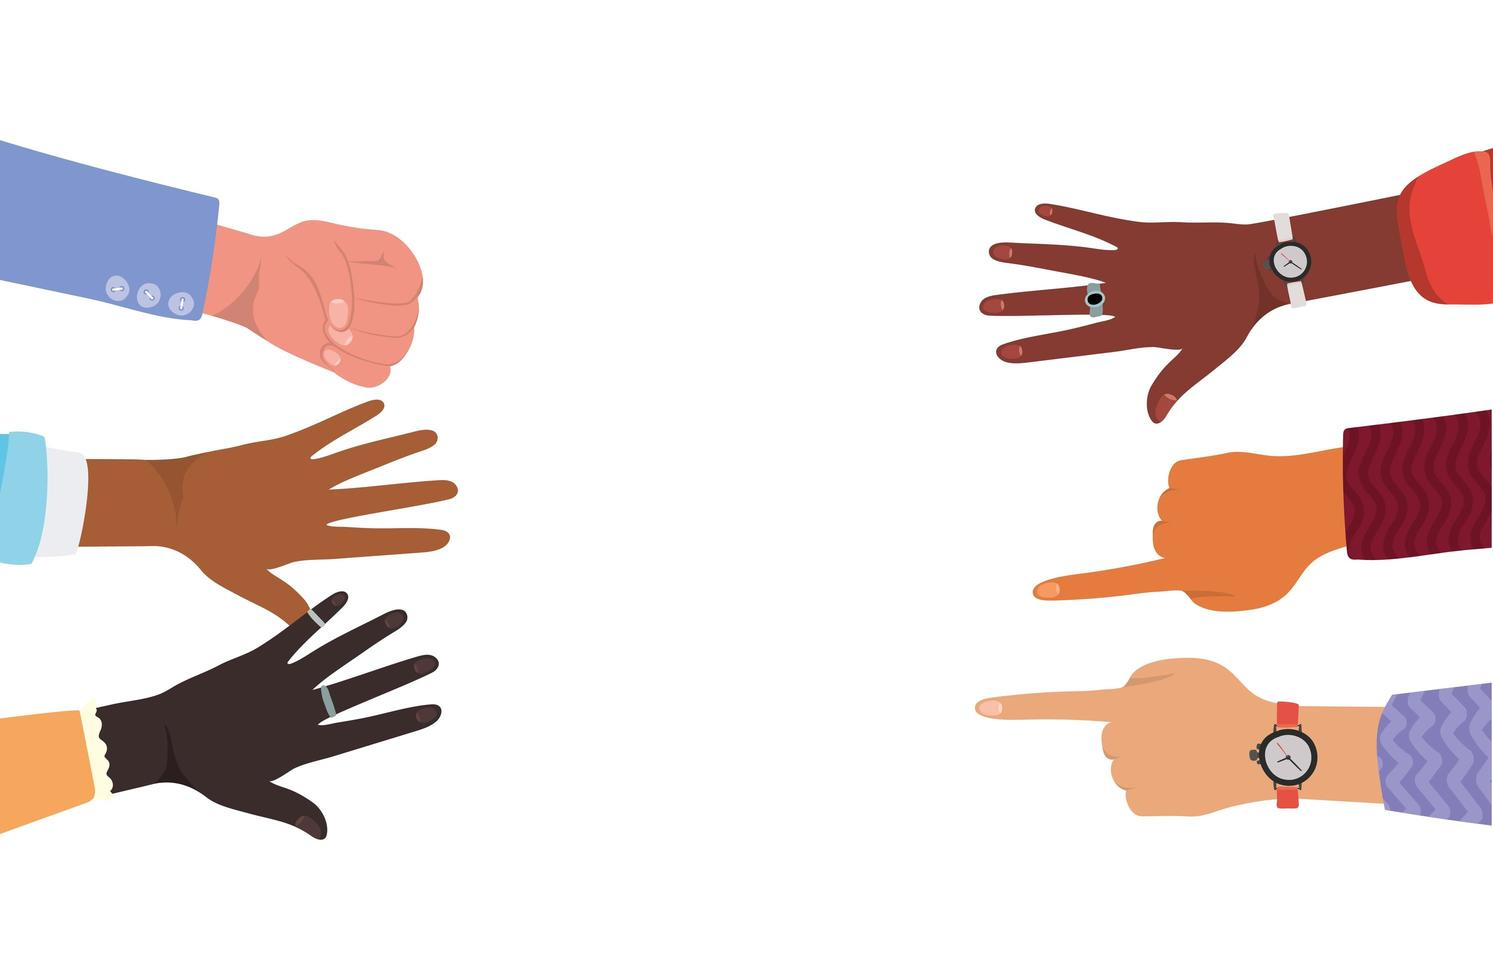 Hands with number one and fist sign vector